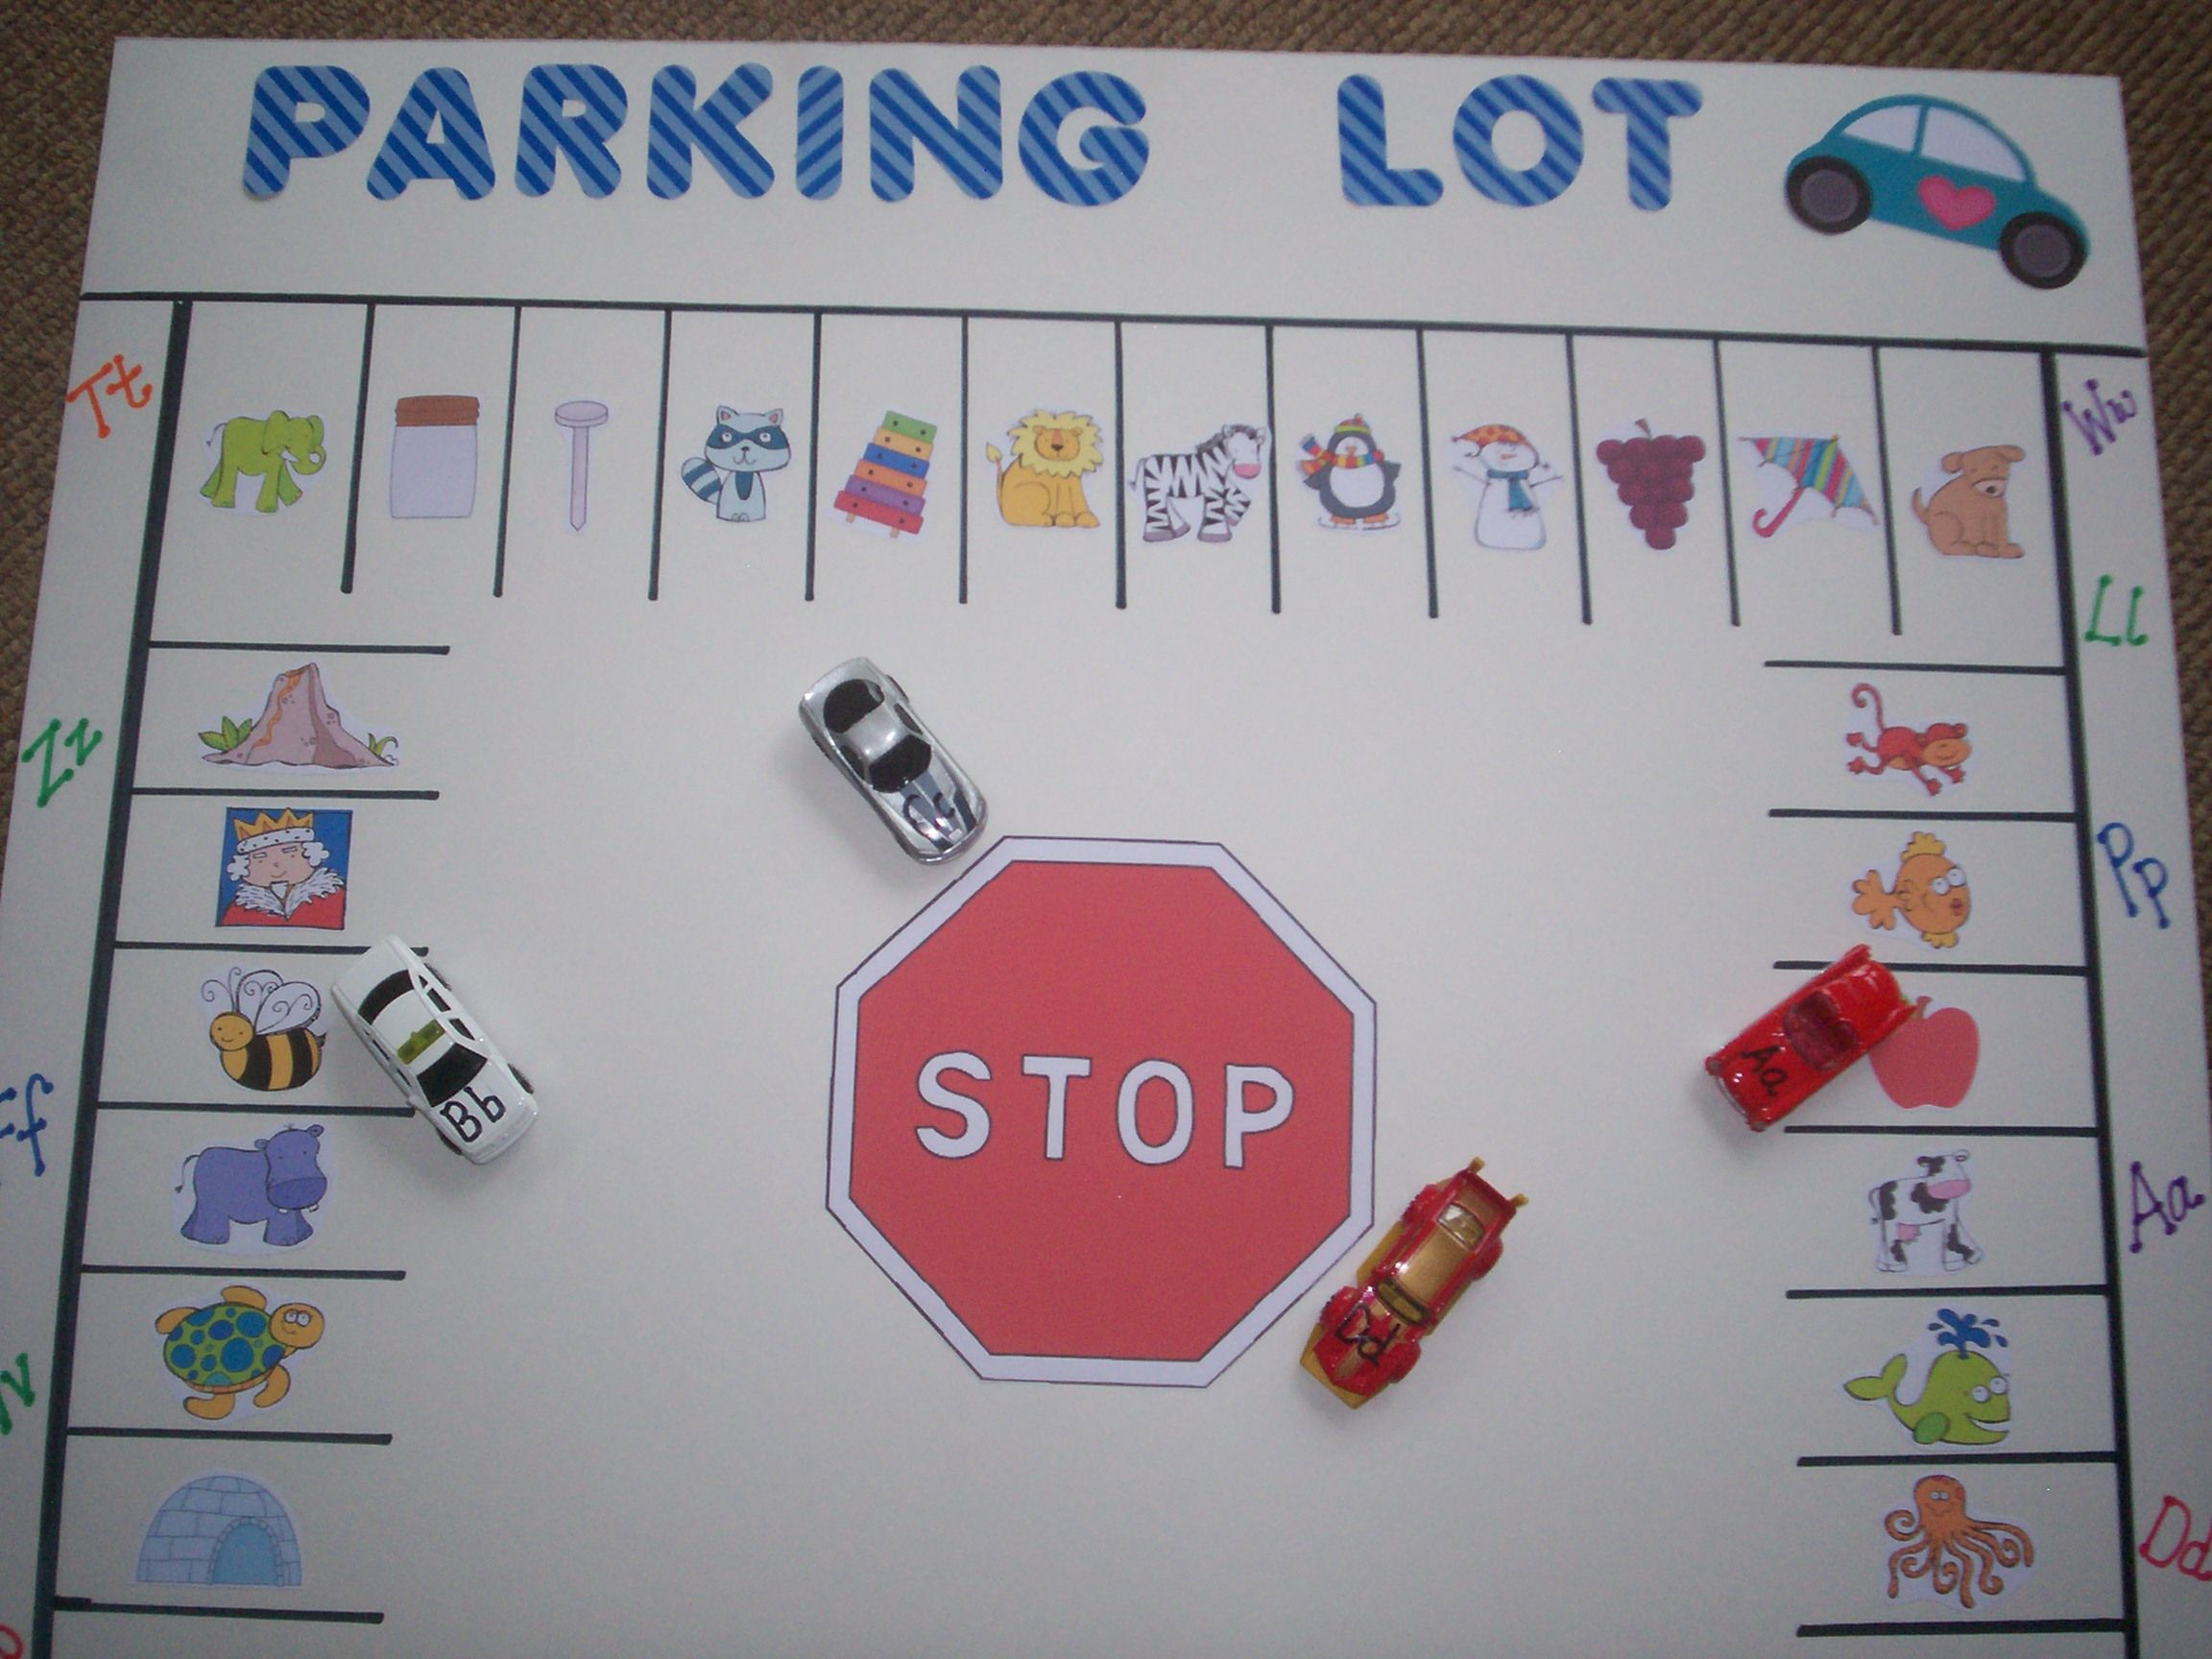 Parking Lot Alphabet Letter Sound Literacy Match Game I Wanted A Fun Literacy Game That My